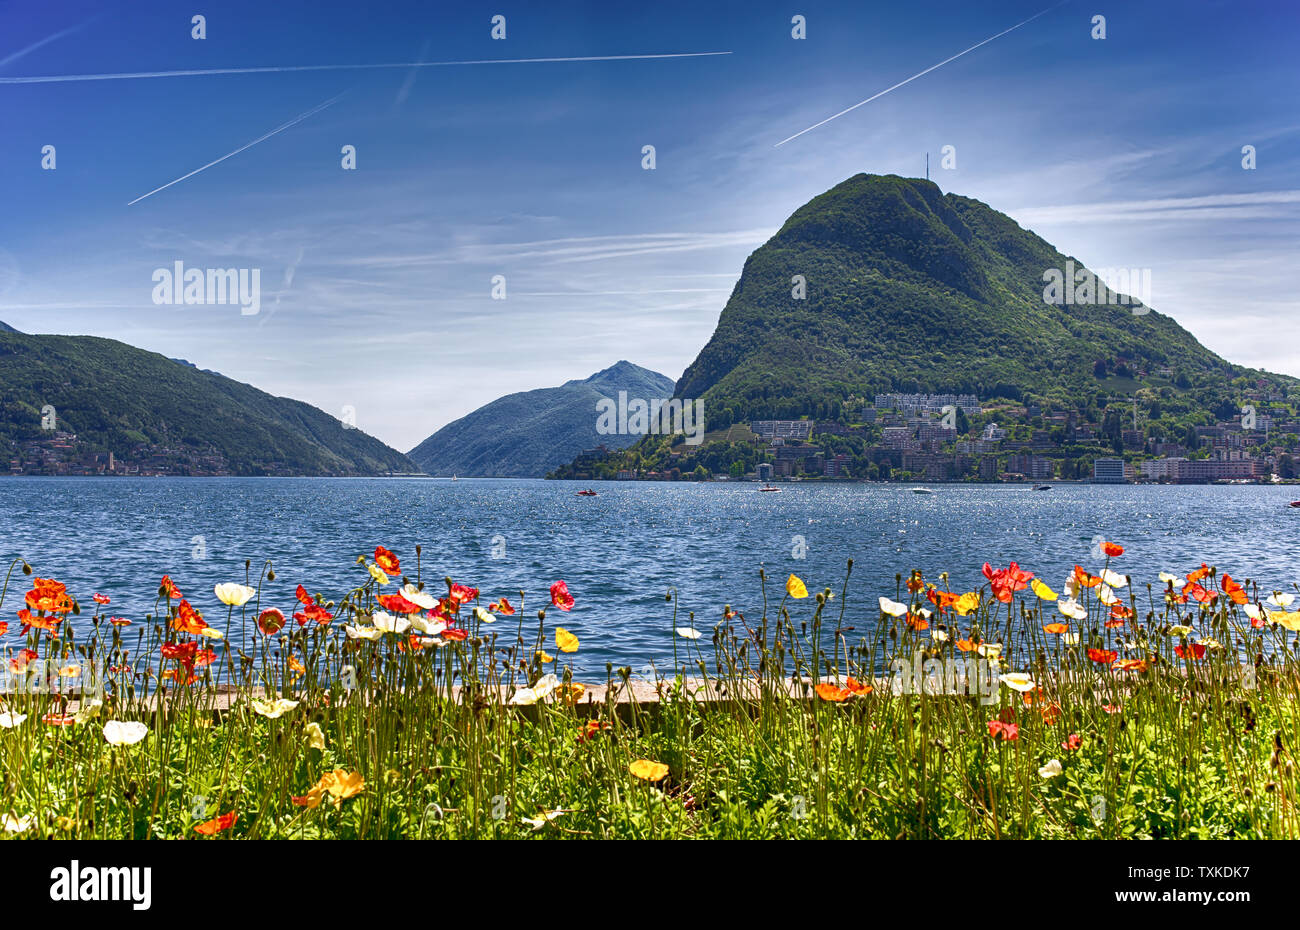 View of Lugano lake, Switzerland, Europe. Stock Photo